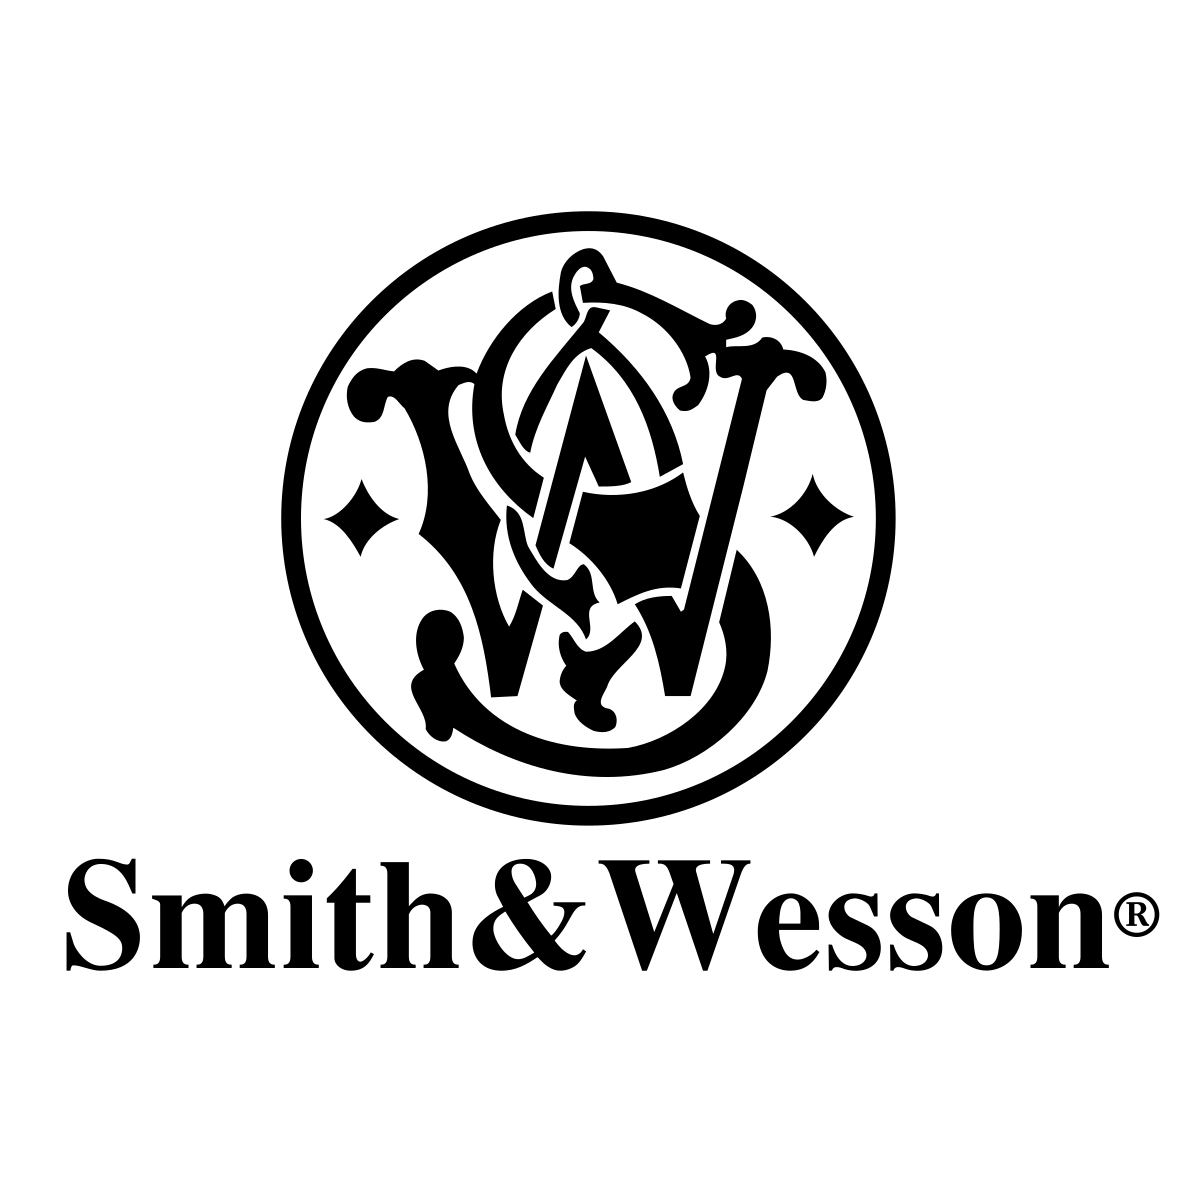 Smith & wesson logo png.